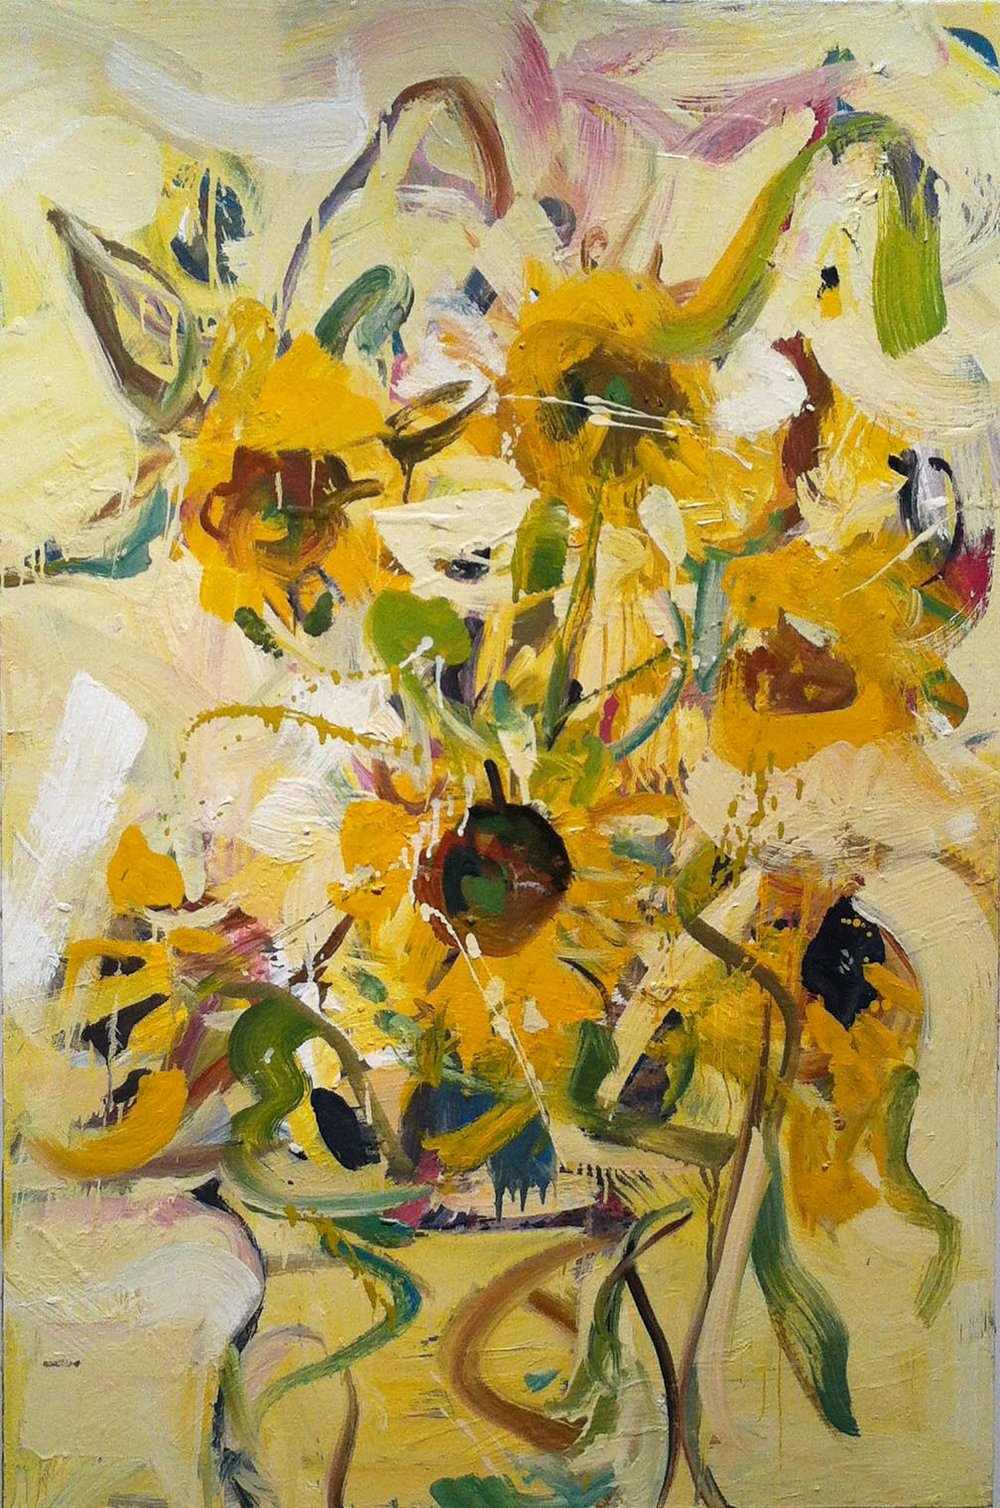 John Imber, Sunflowers II, 2012, oil on panel. Image courtesy of Alpha Gallery.